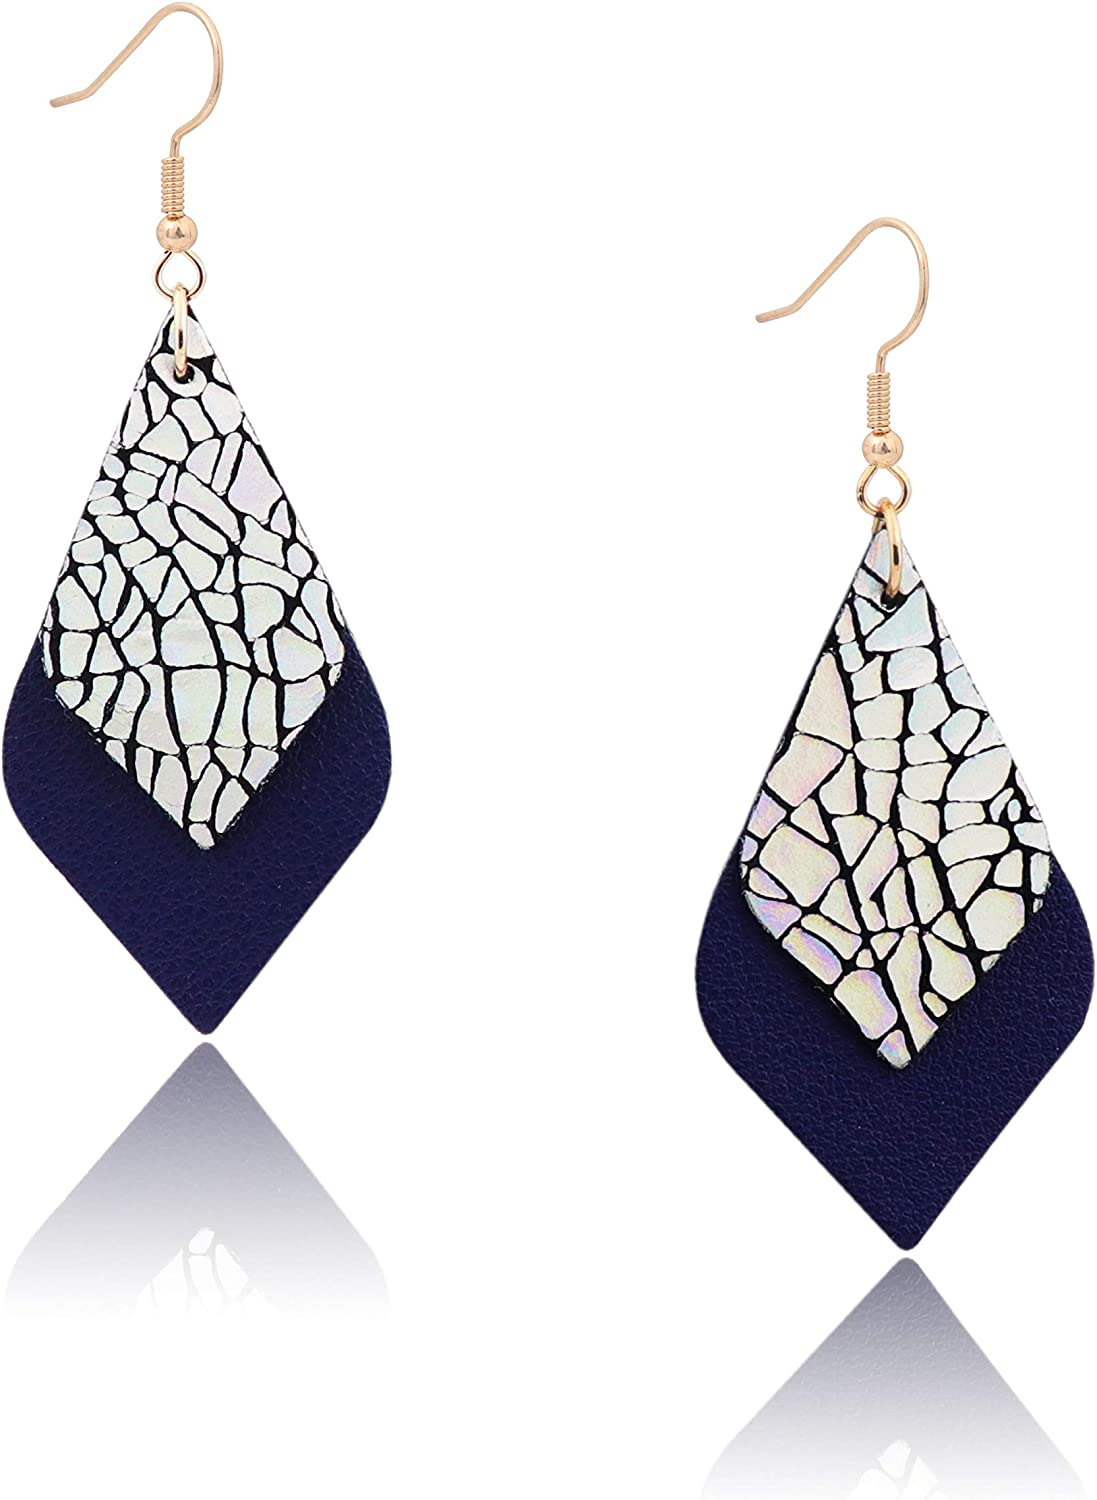 ZSMJYJ Popular shop is the lowest price Max 69% OFF challenge Gold Dangle Drop Leather Hypoallergenic Genuine Earrings